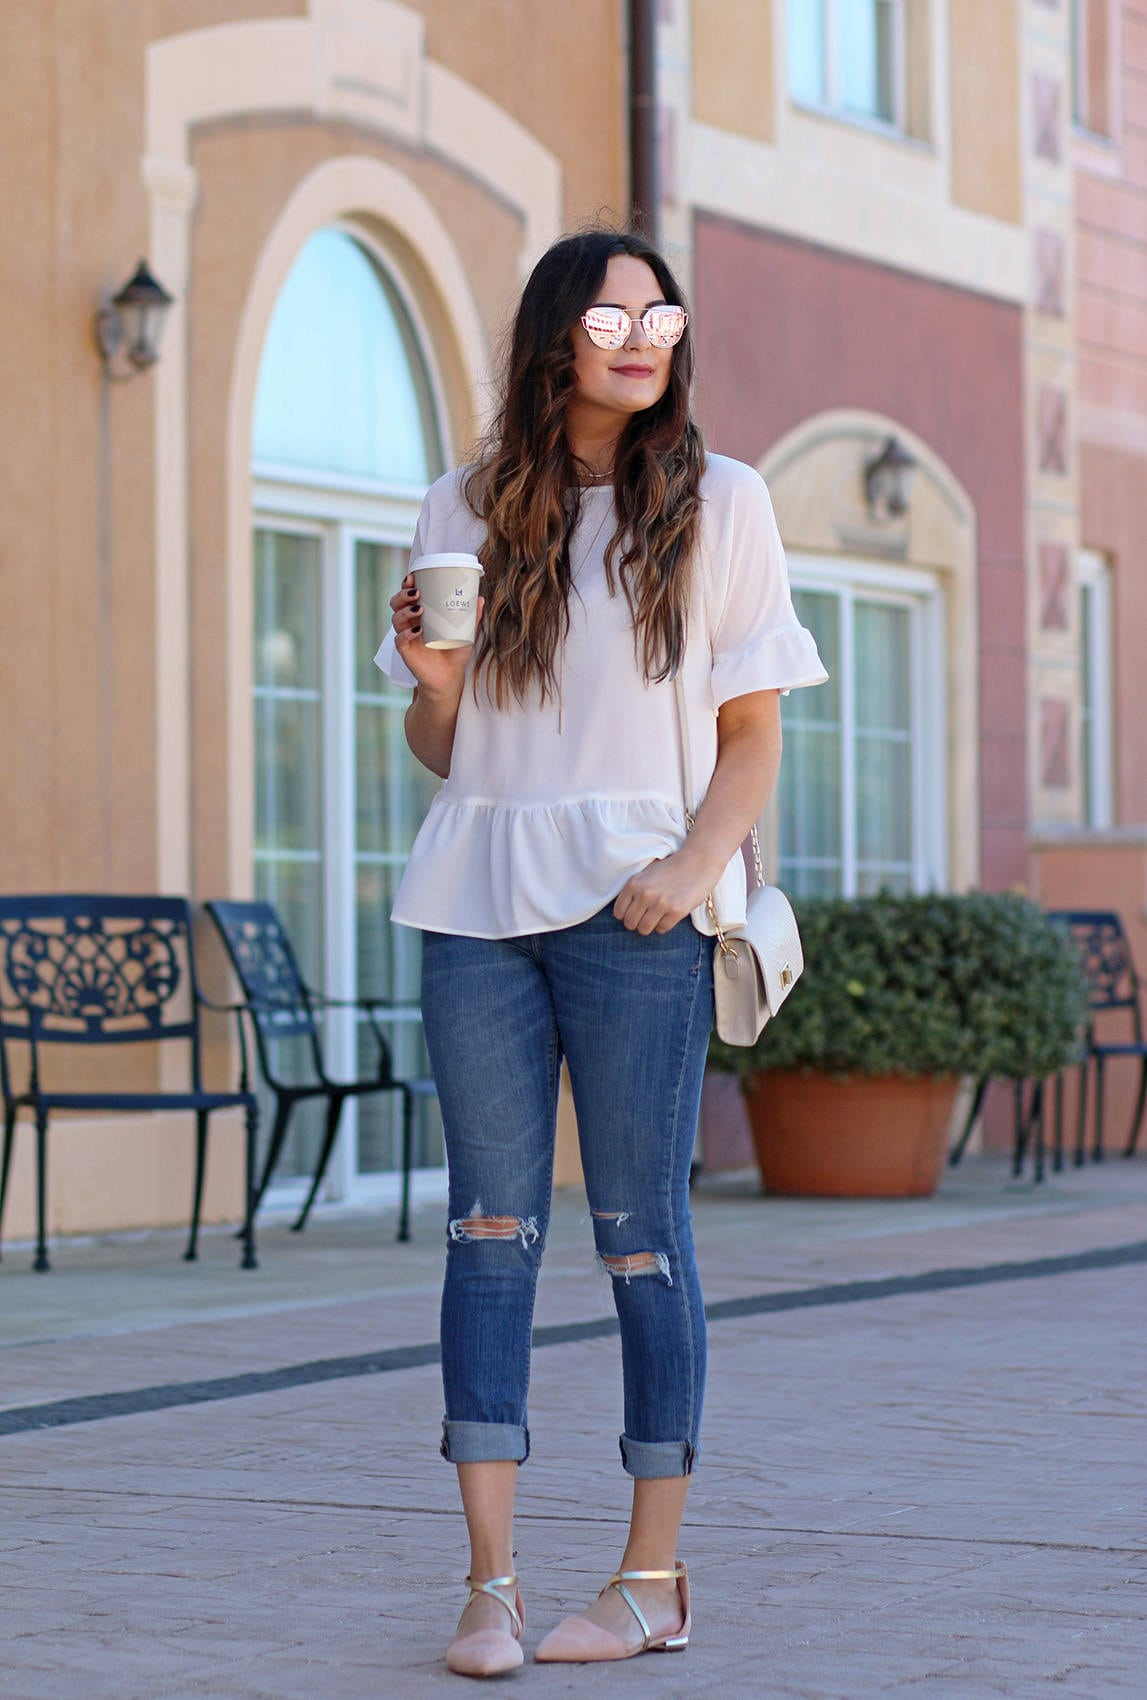 Fashion blogger Mash Elle shares a casual spring look | white ruffle shirt | Nordstrom, Express | ripped skinny jeans | comfortable Forever 21 flats | Loews Portofino Bay in Universal Studios, Orlando Florida